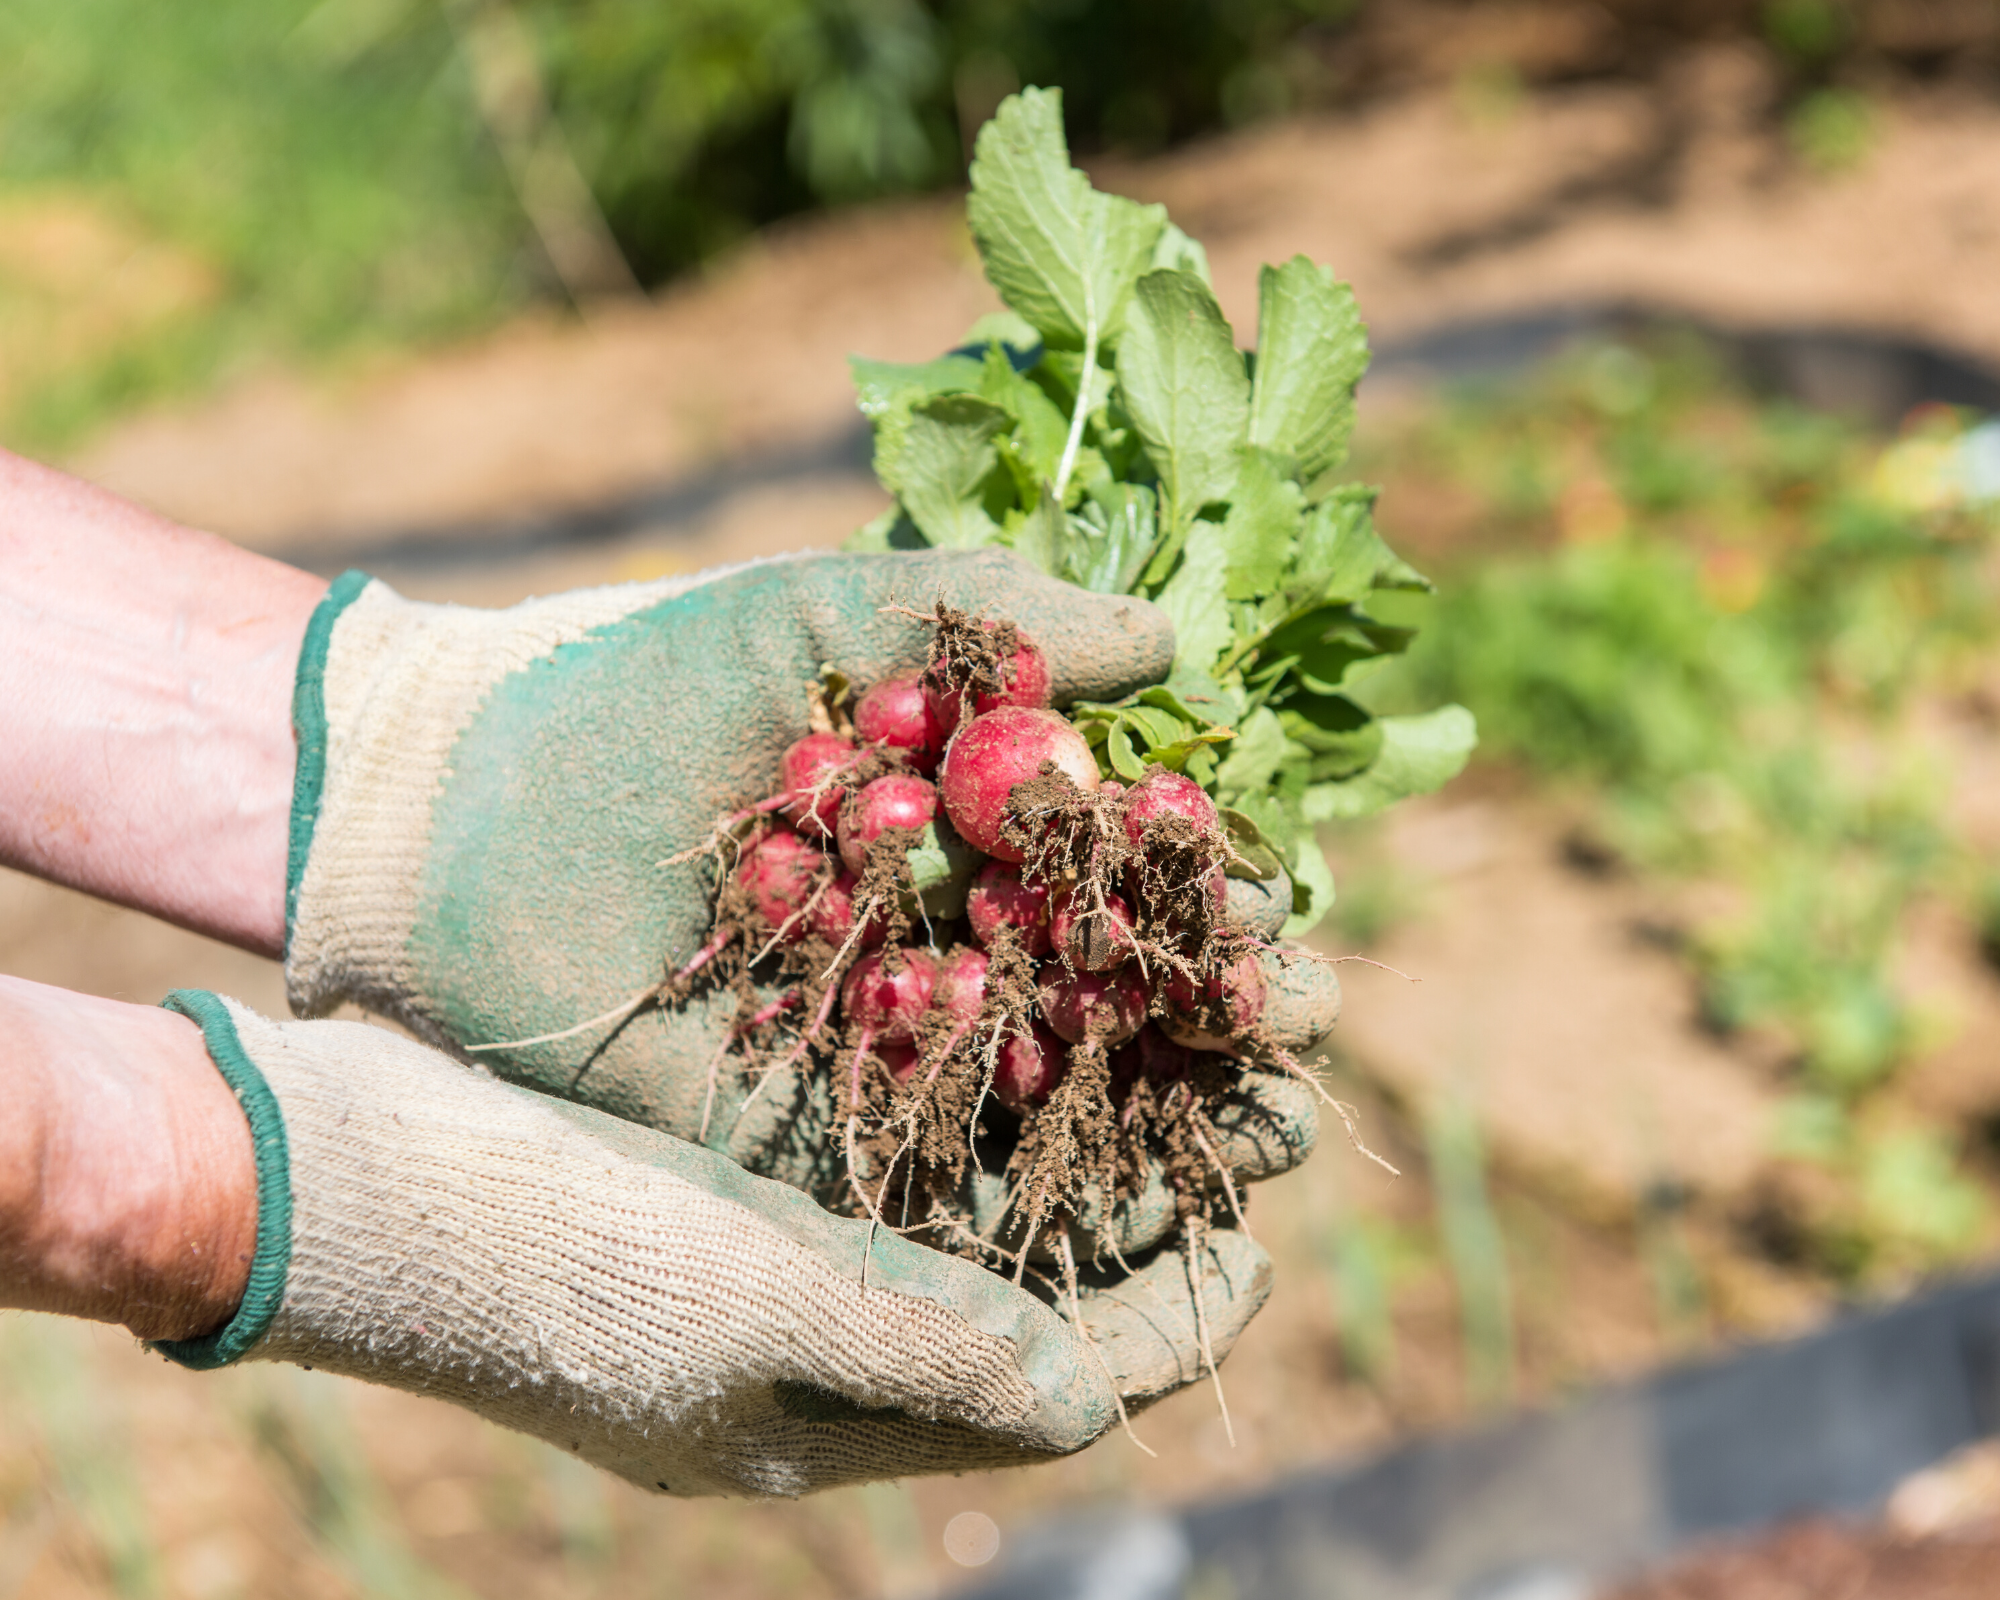 person with gardening gloves on holding a freshly harvested bunch of radishes